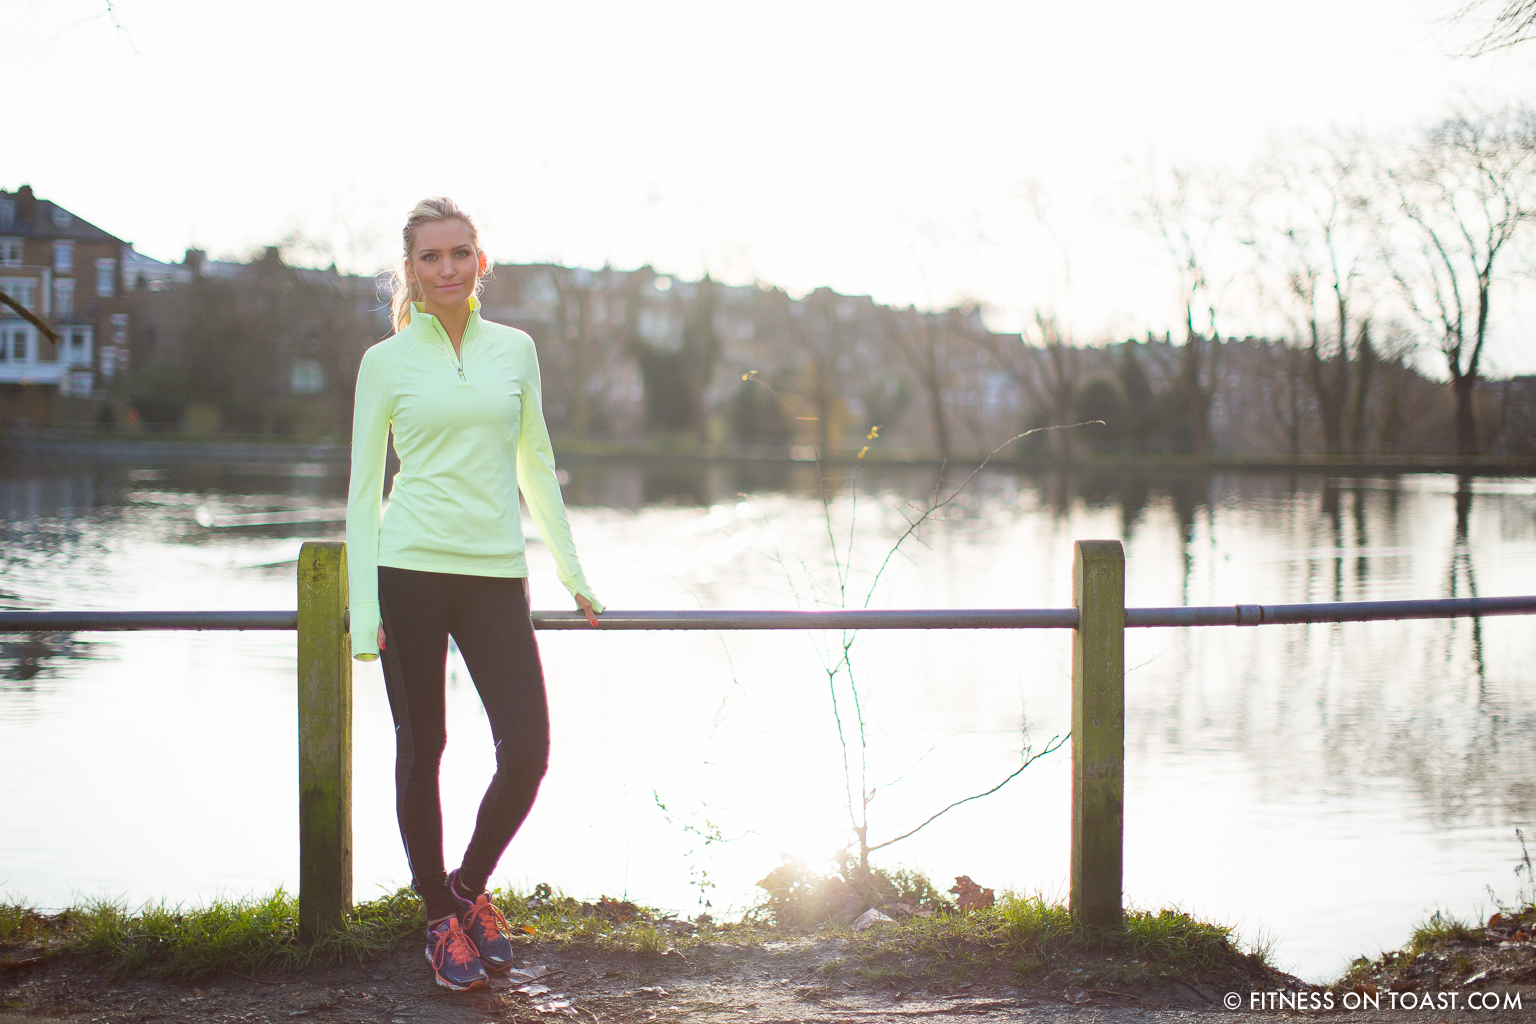 Fitness On Toast Faya Blog Girl Healthy Running Gap Fit Hampstead Heath London Workout Destination Outdoor Active Escape Running Train Exercise-4